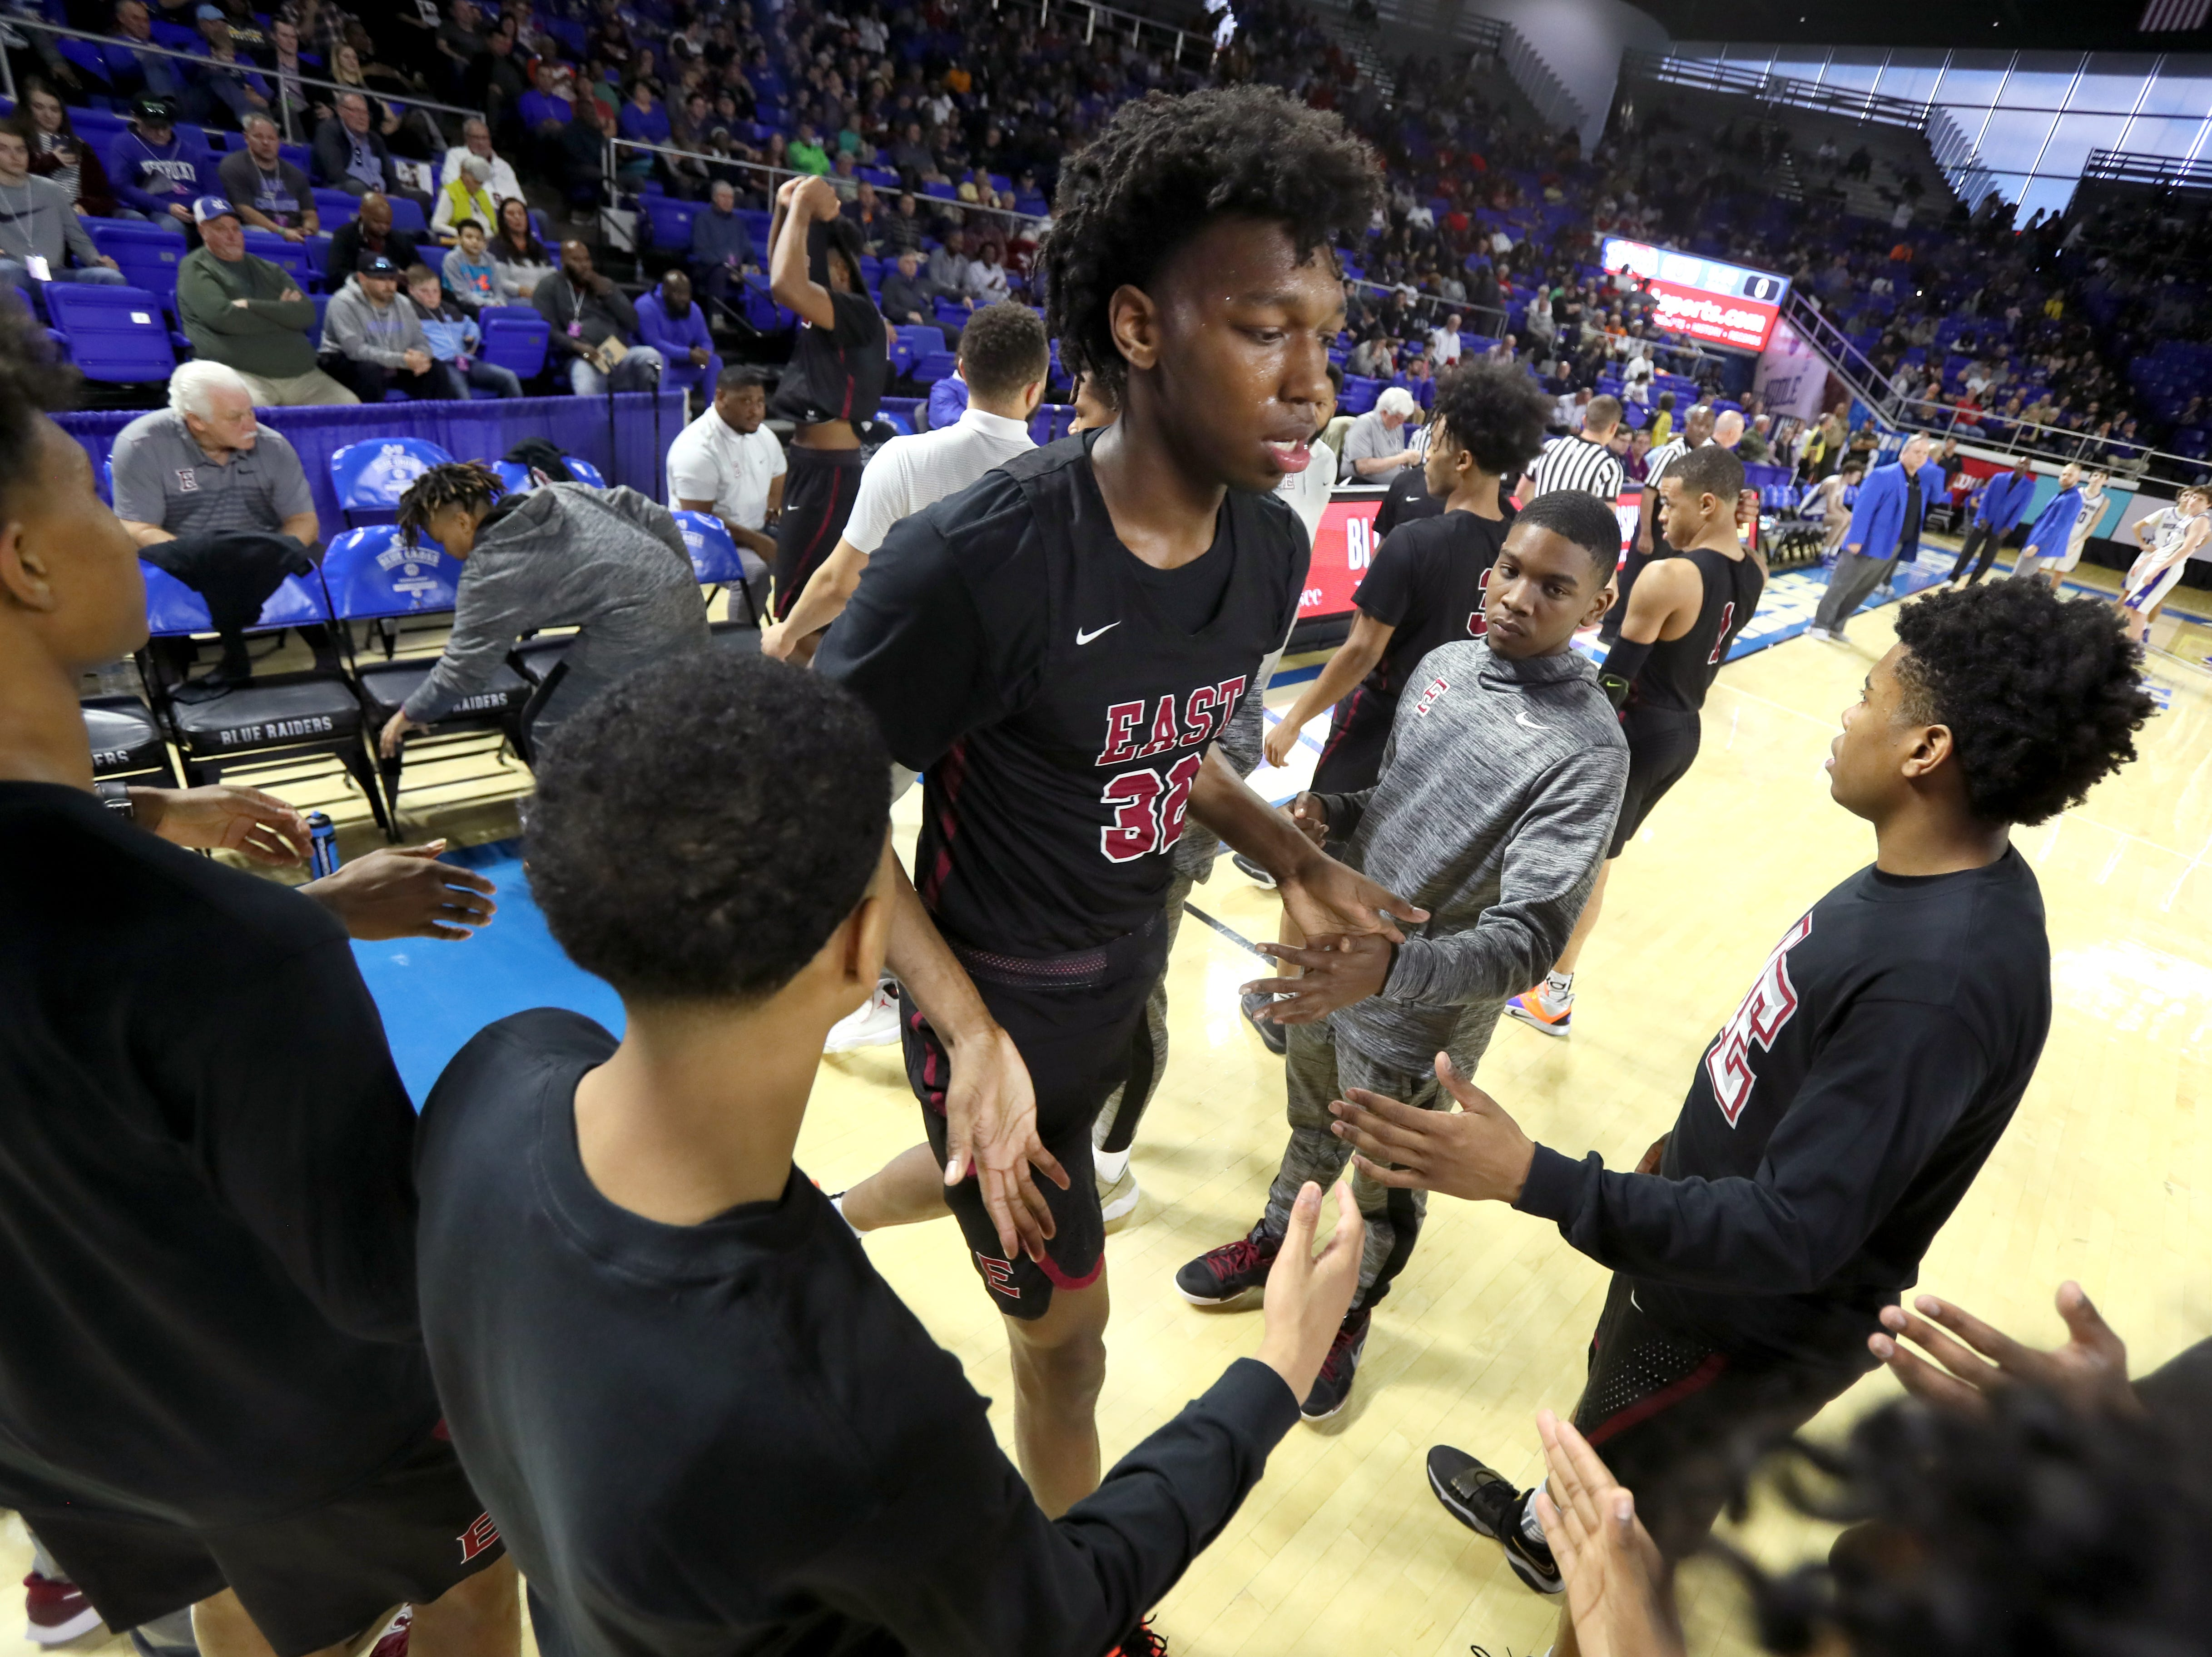 Memphis East's James Wiseman is introduced before their game against Brentwood during the Class AAA boys basketball state semifinal at the Murphy Center in Murfreesboro, Tenn. on Thursday, March 14, 2019.